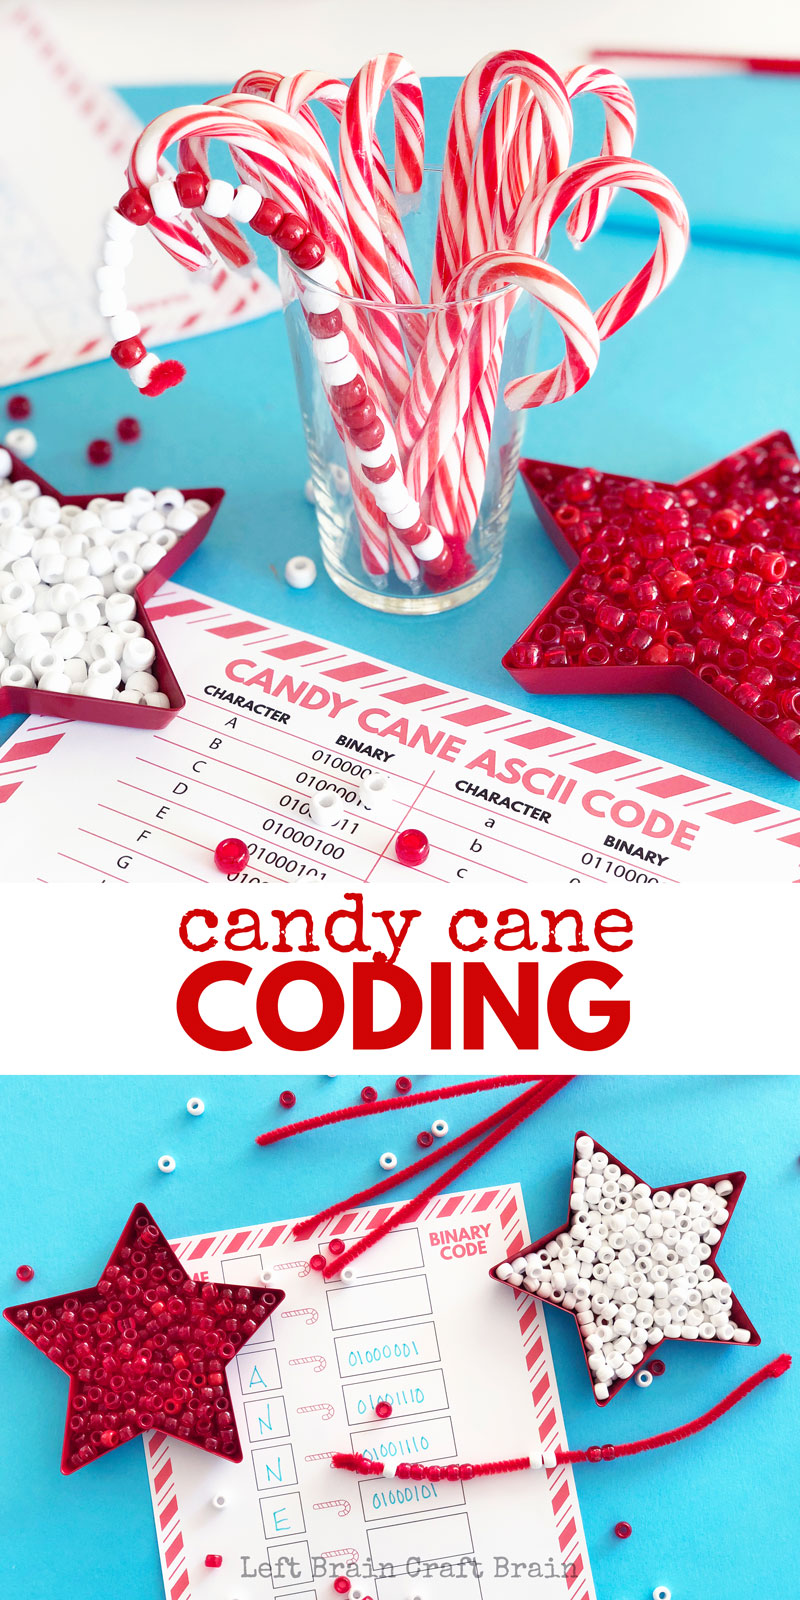 Candy Cane Coding STEAM Activity for Kids - Left Brain Craft Brain